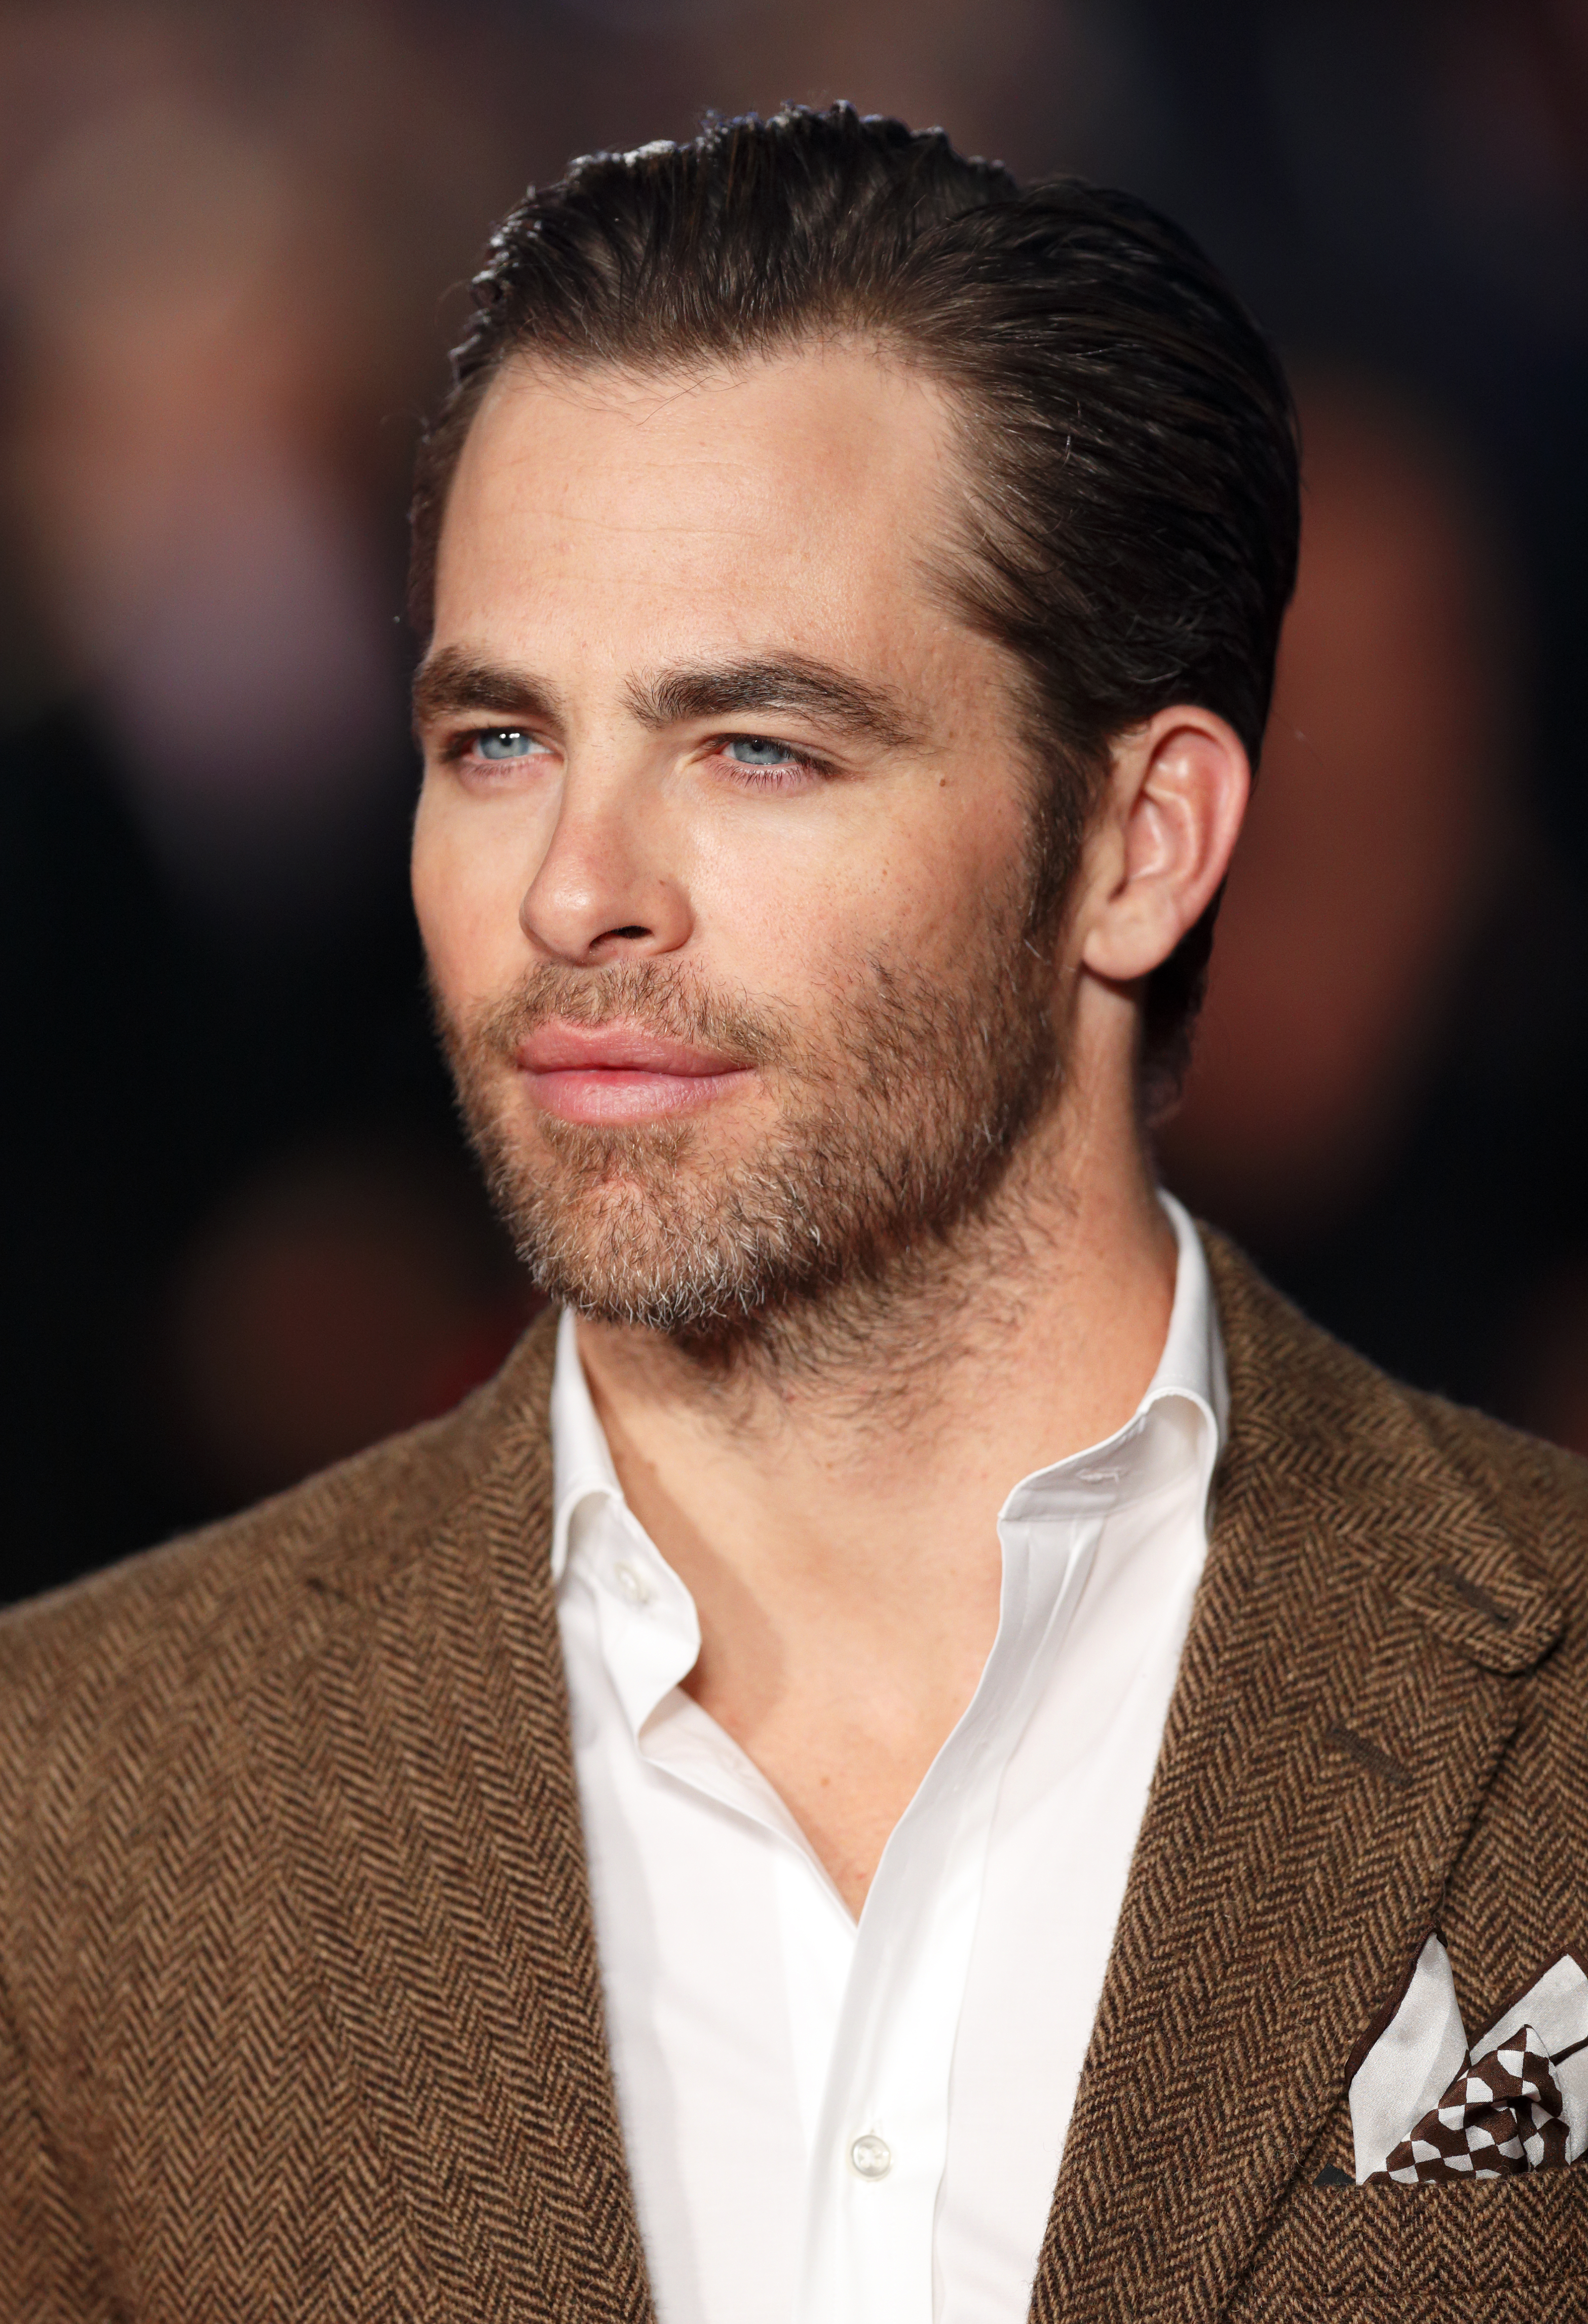 Chris Pine attends the UK Premiere of 'Jack Ryan: Shadow Recruit' at Vue Leicester Square on Jan. 20, 2014 in London.